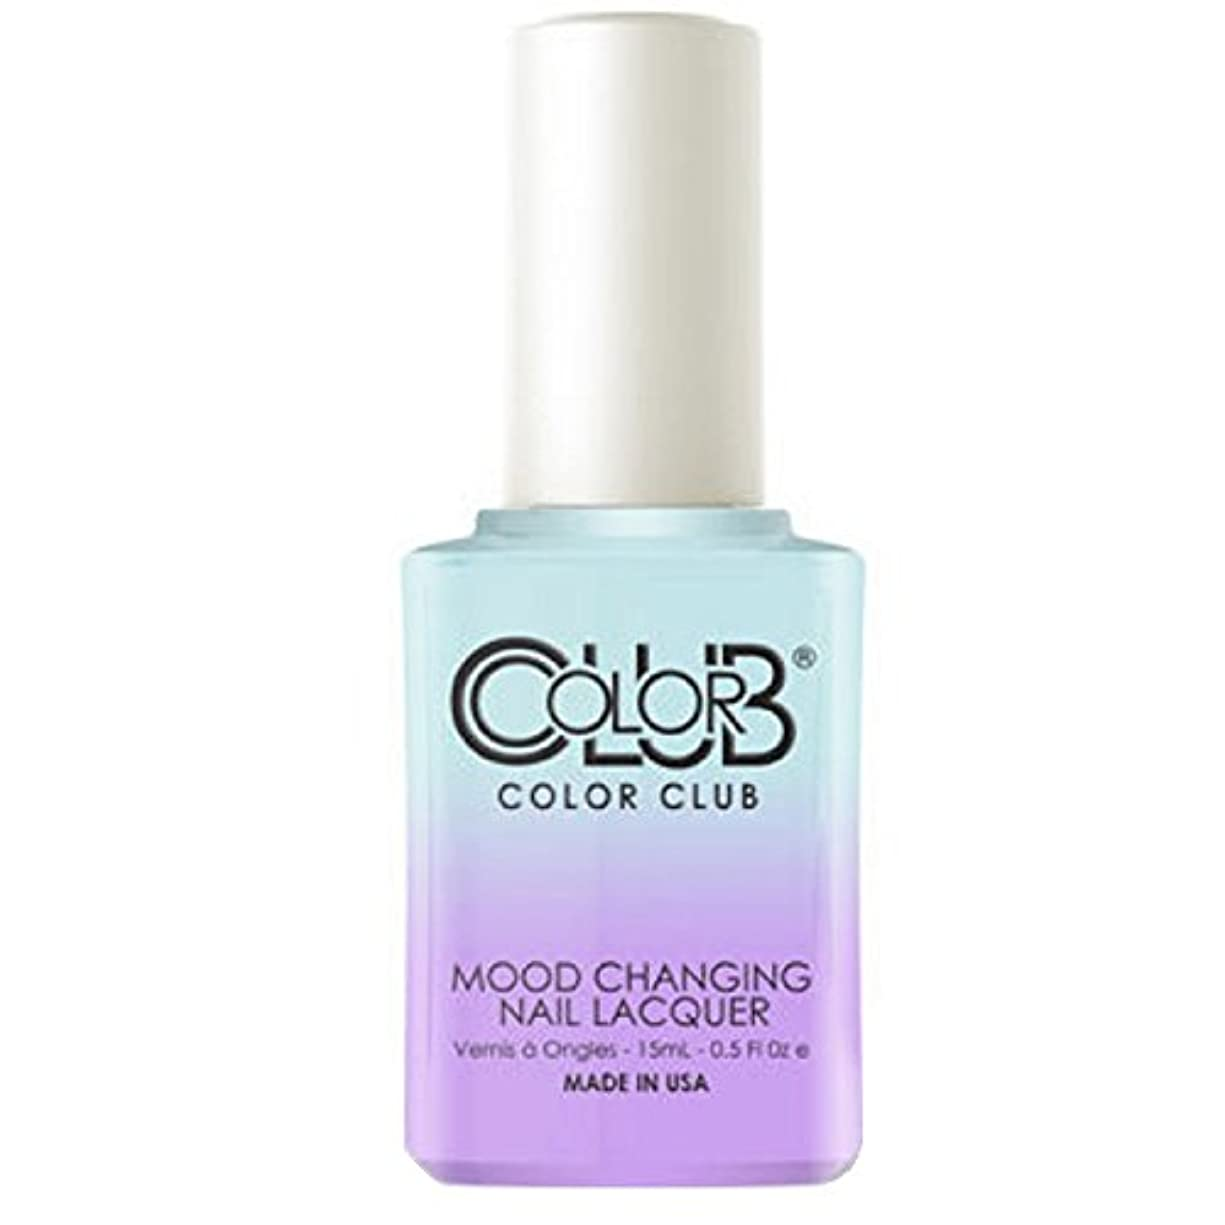 広まった取り扱い駐地Color Club Mood Changing Nail Lacquer - Blue Skies Ahead - 15 mL / 0.5 fl oz